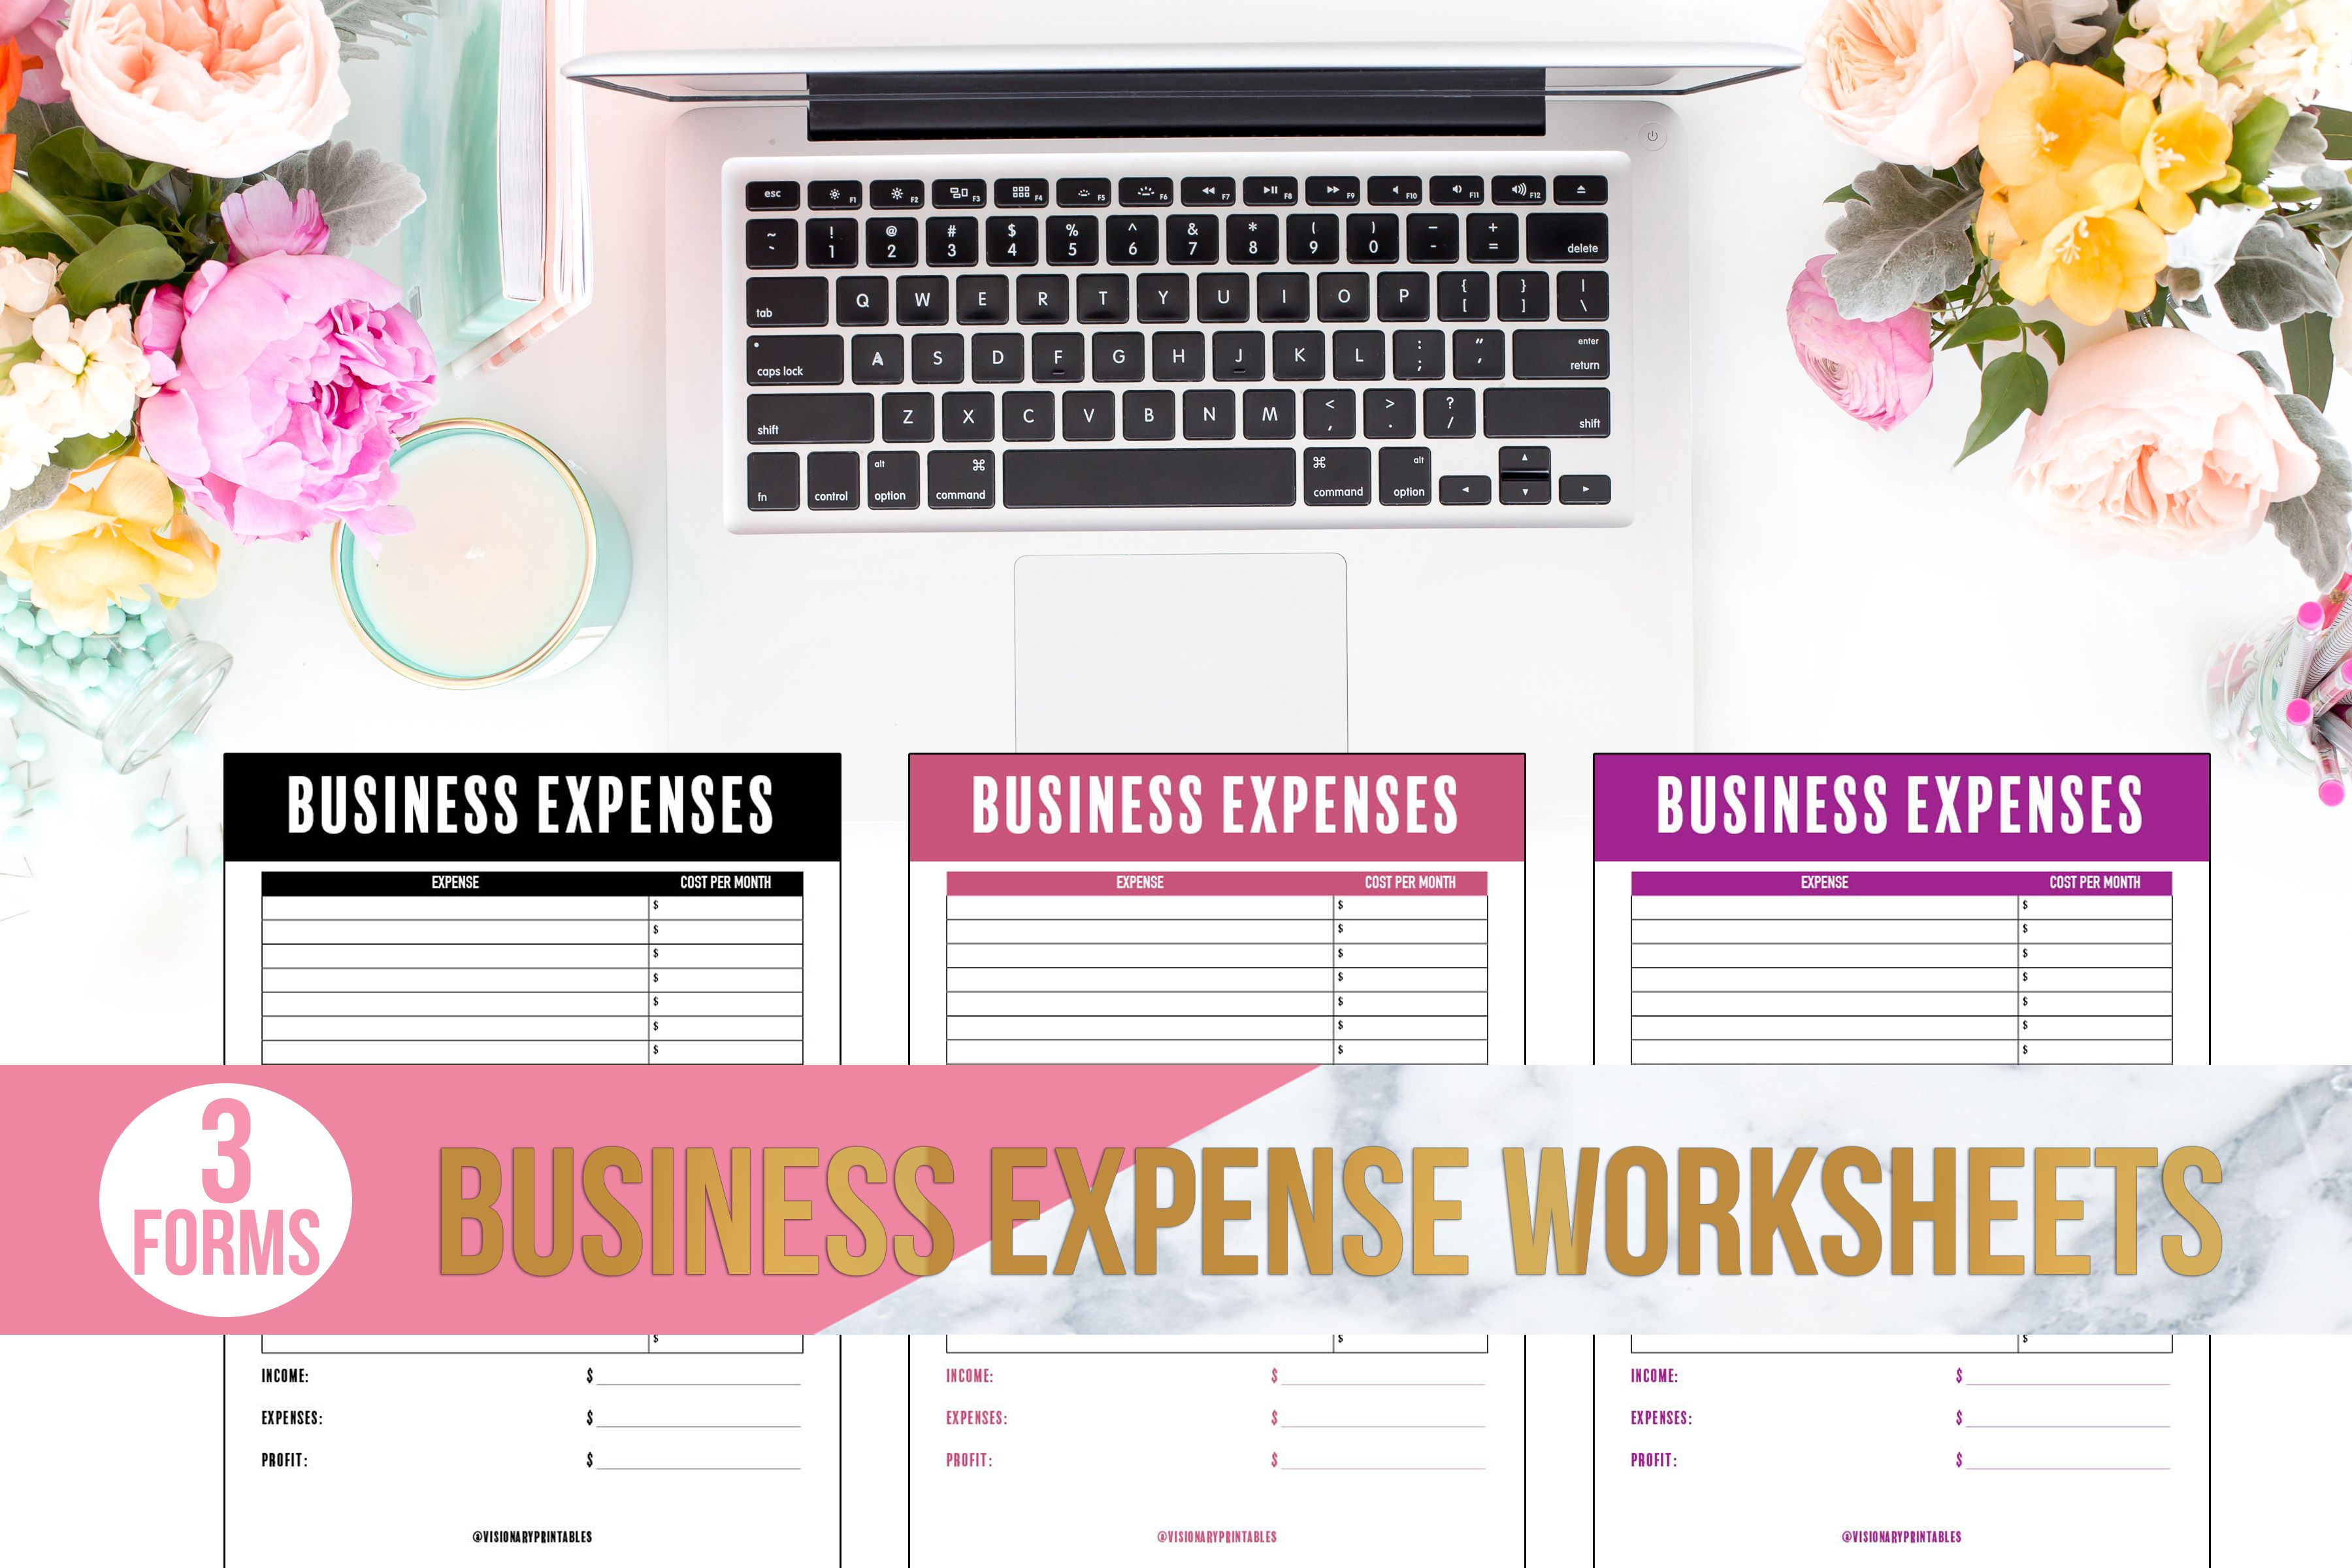 Business Expense Worksheets